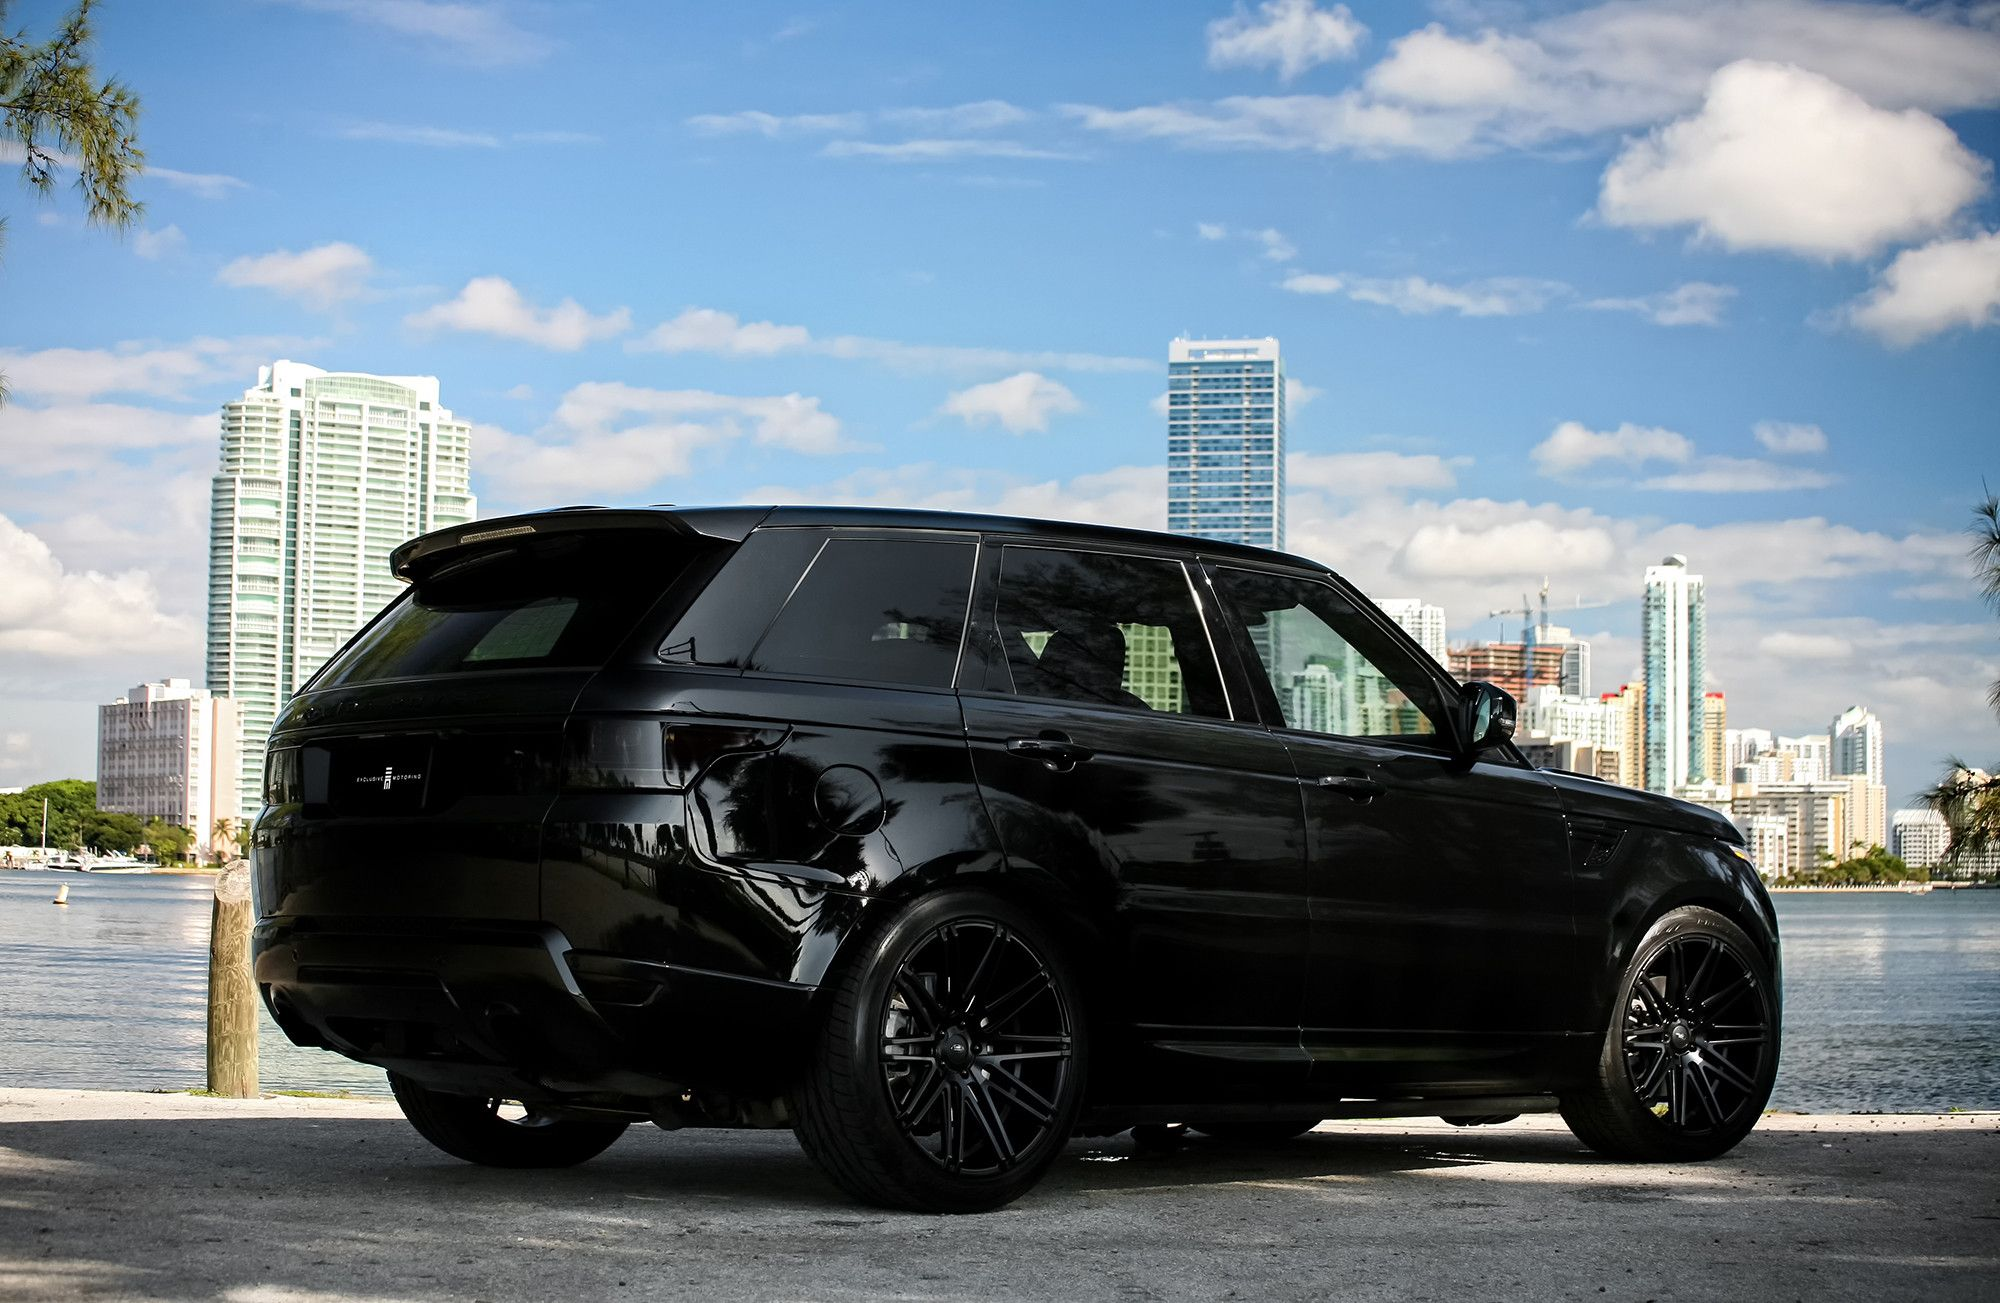 HD Black Range Rover Sport Wallpaper In Cars. Download